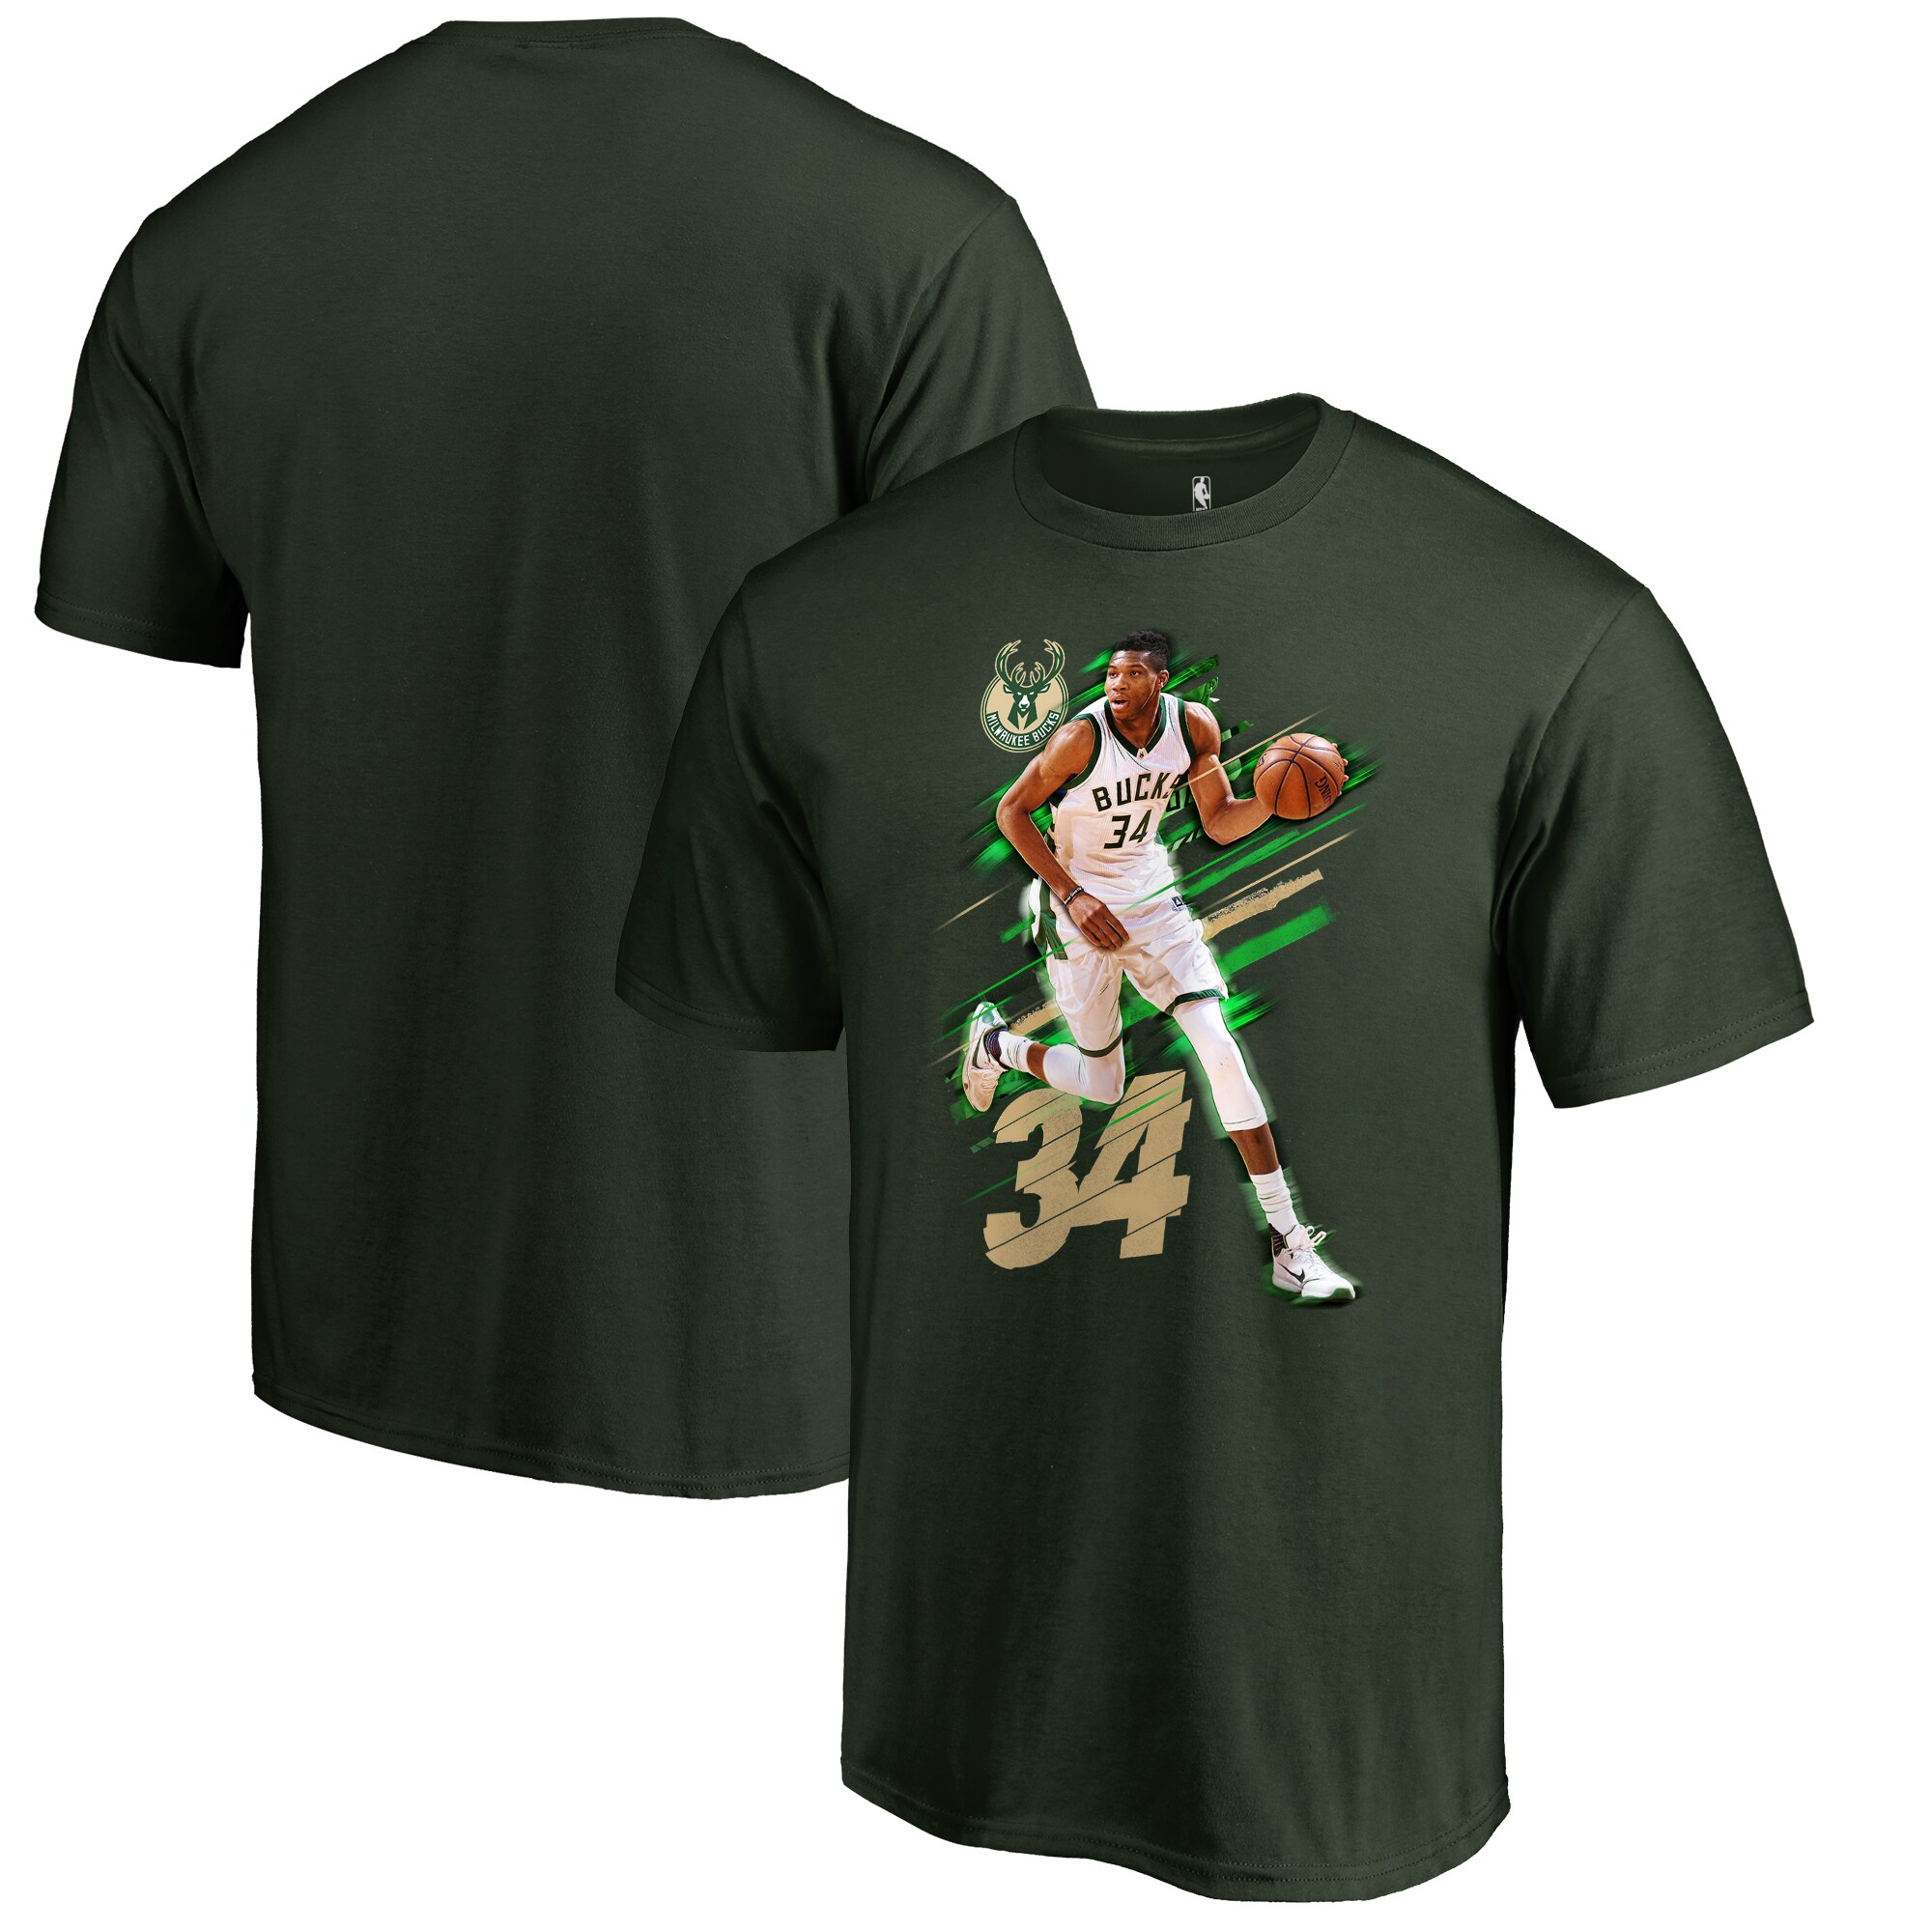 Giannis Antetokounmpo Milwaukee Bucks Fanatics Branded Fade Away T-Shirt - Green